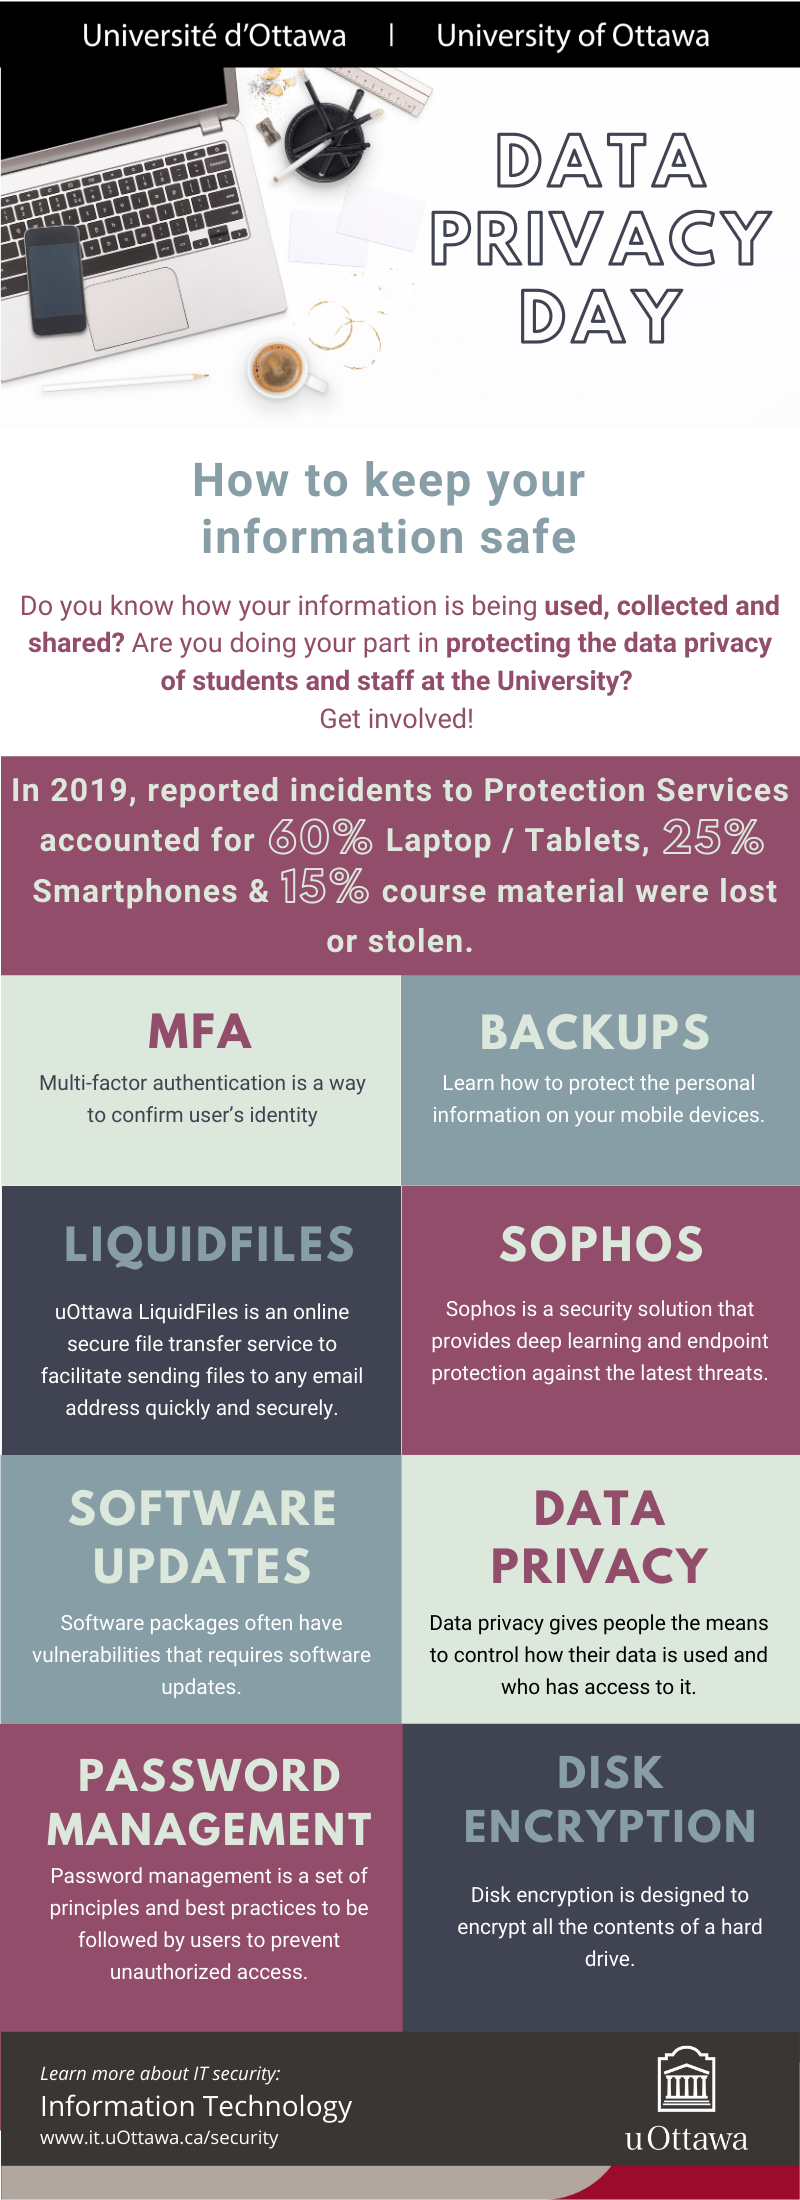 How to keep your information safe', includes image of a workstation with a macbook, an iPhone, pencil cup, ruler, cup of coffee and iPhone atop the macbook keyboard. Infographic lists different methods to improve